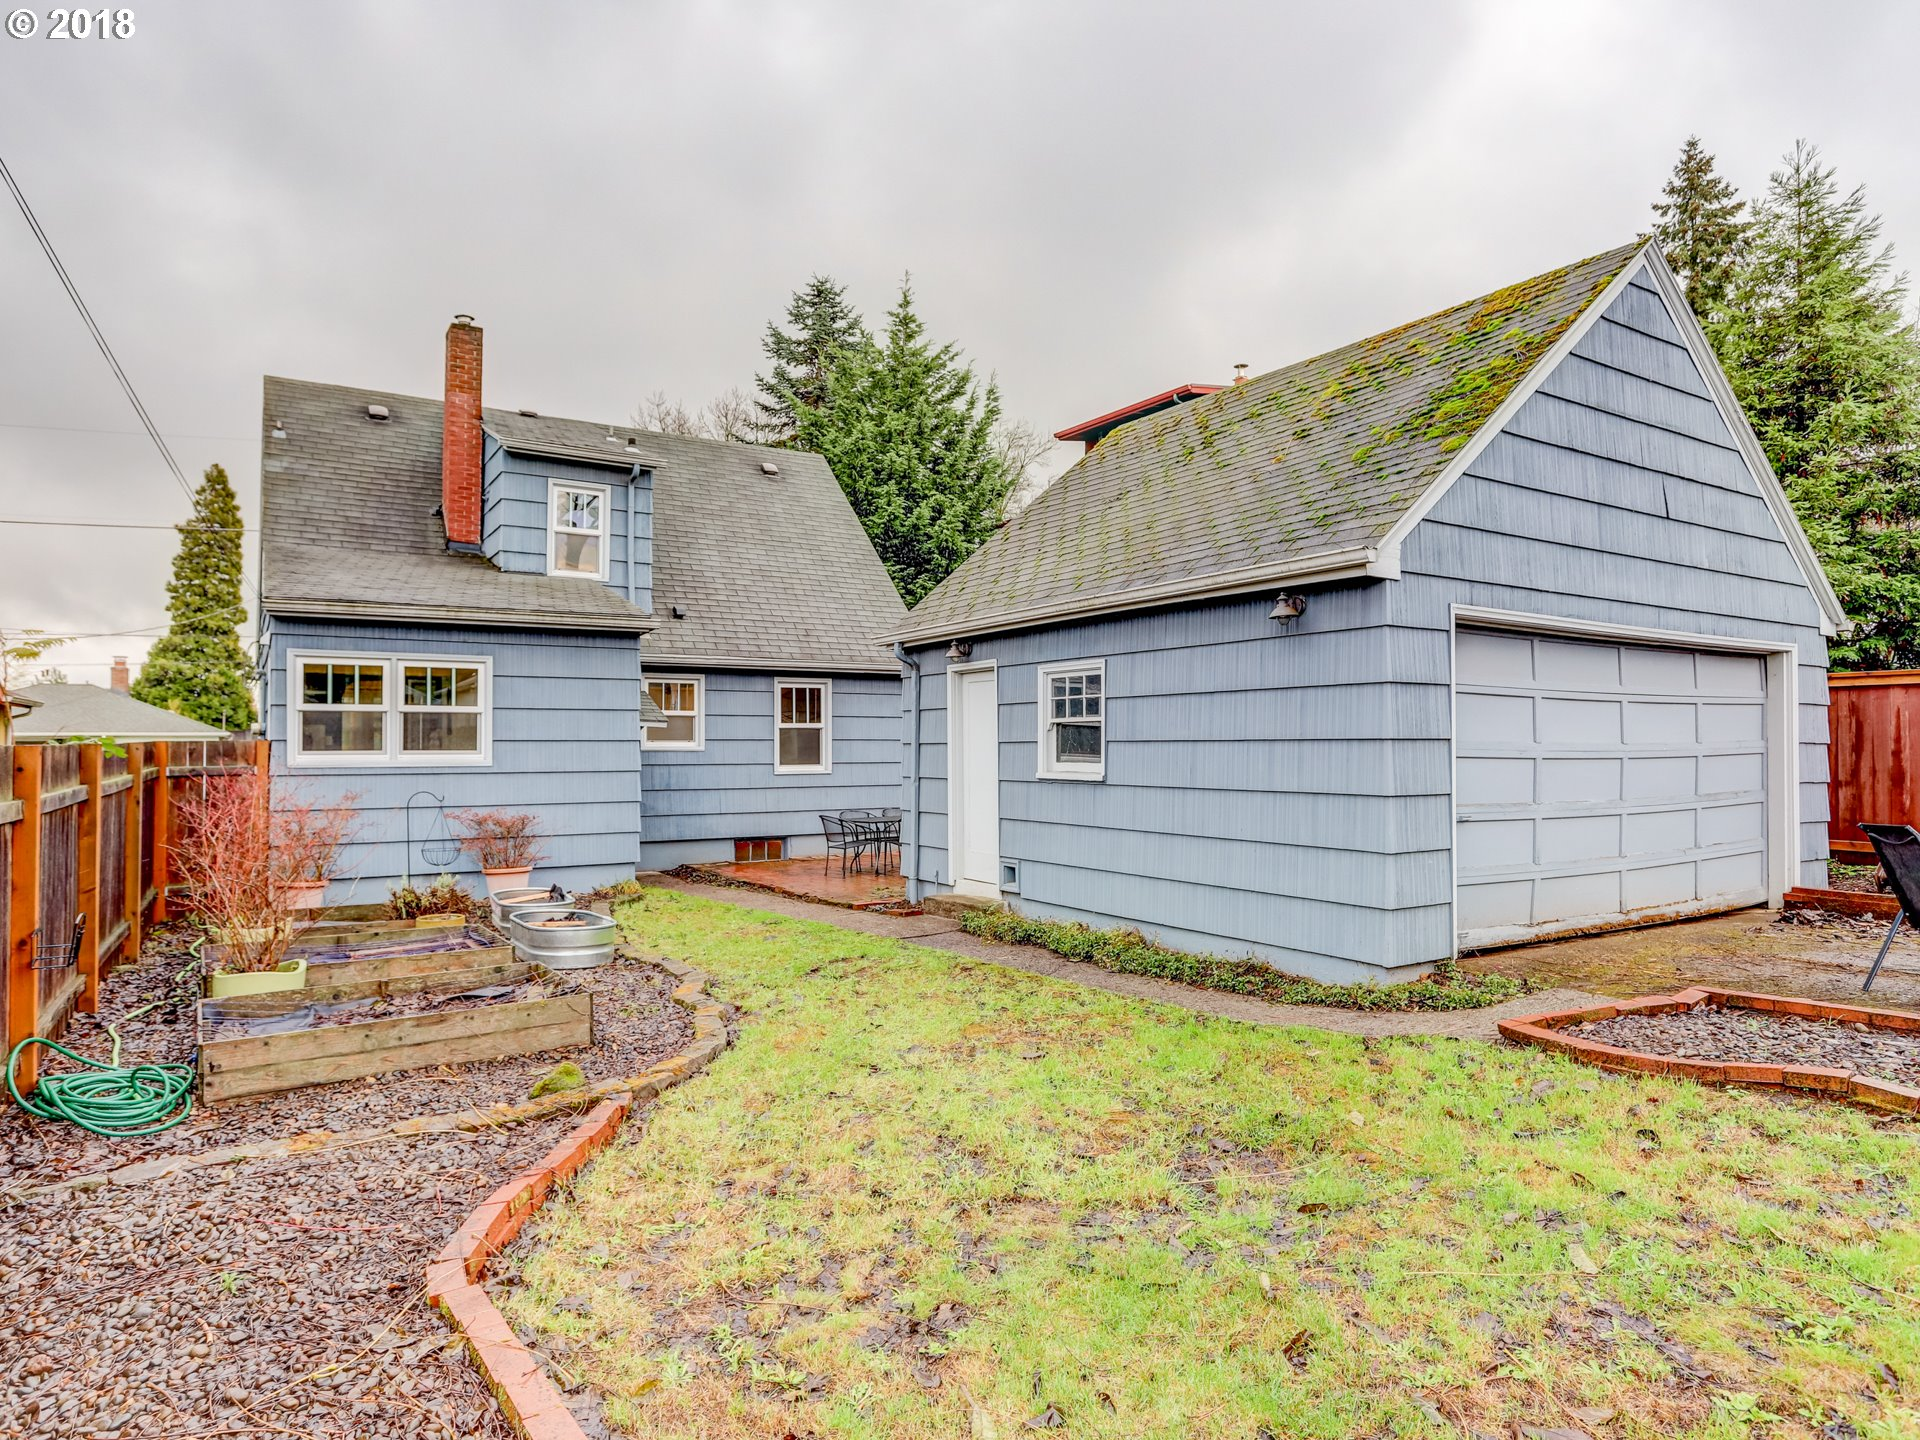 6915 N MONTANA AVE Portland, OR 97217 - MLS #: 18178679